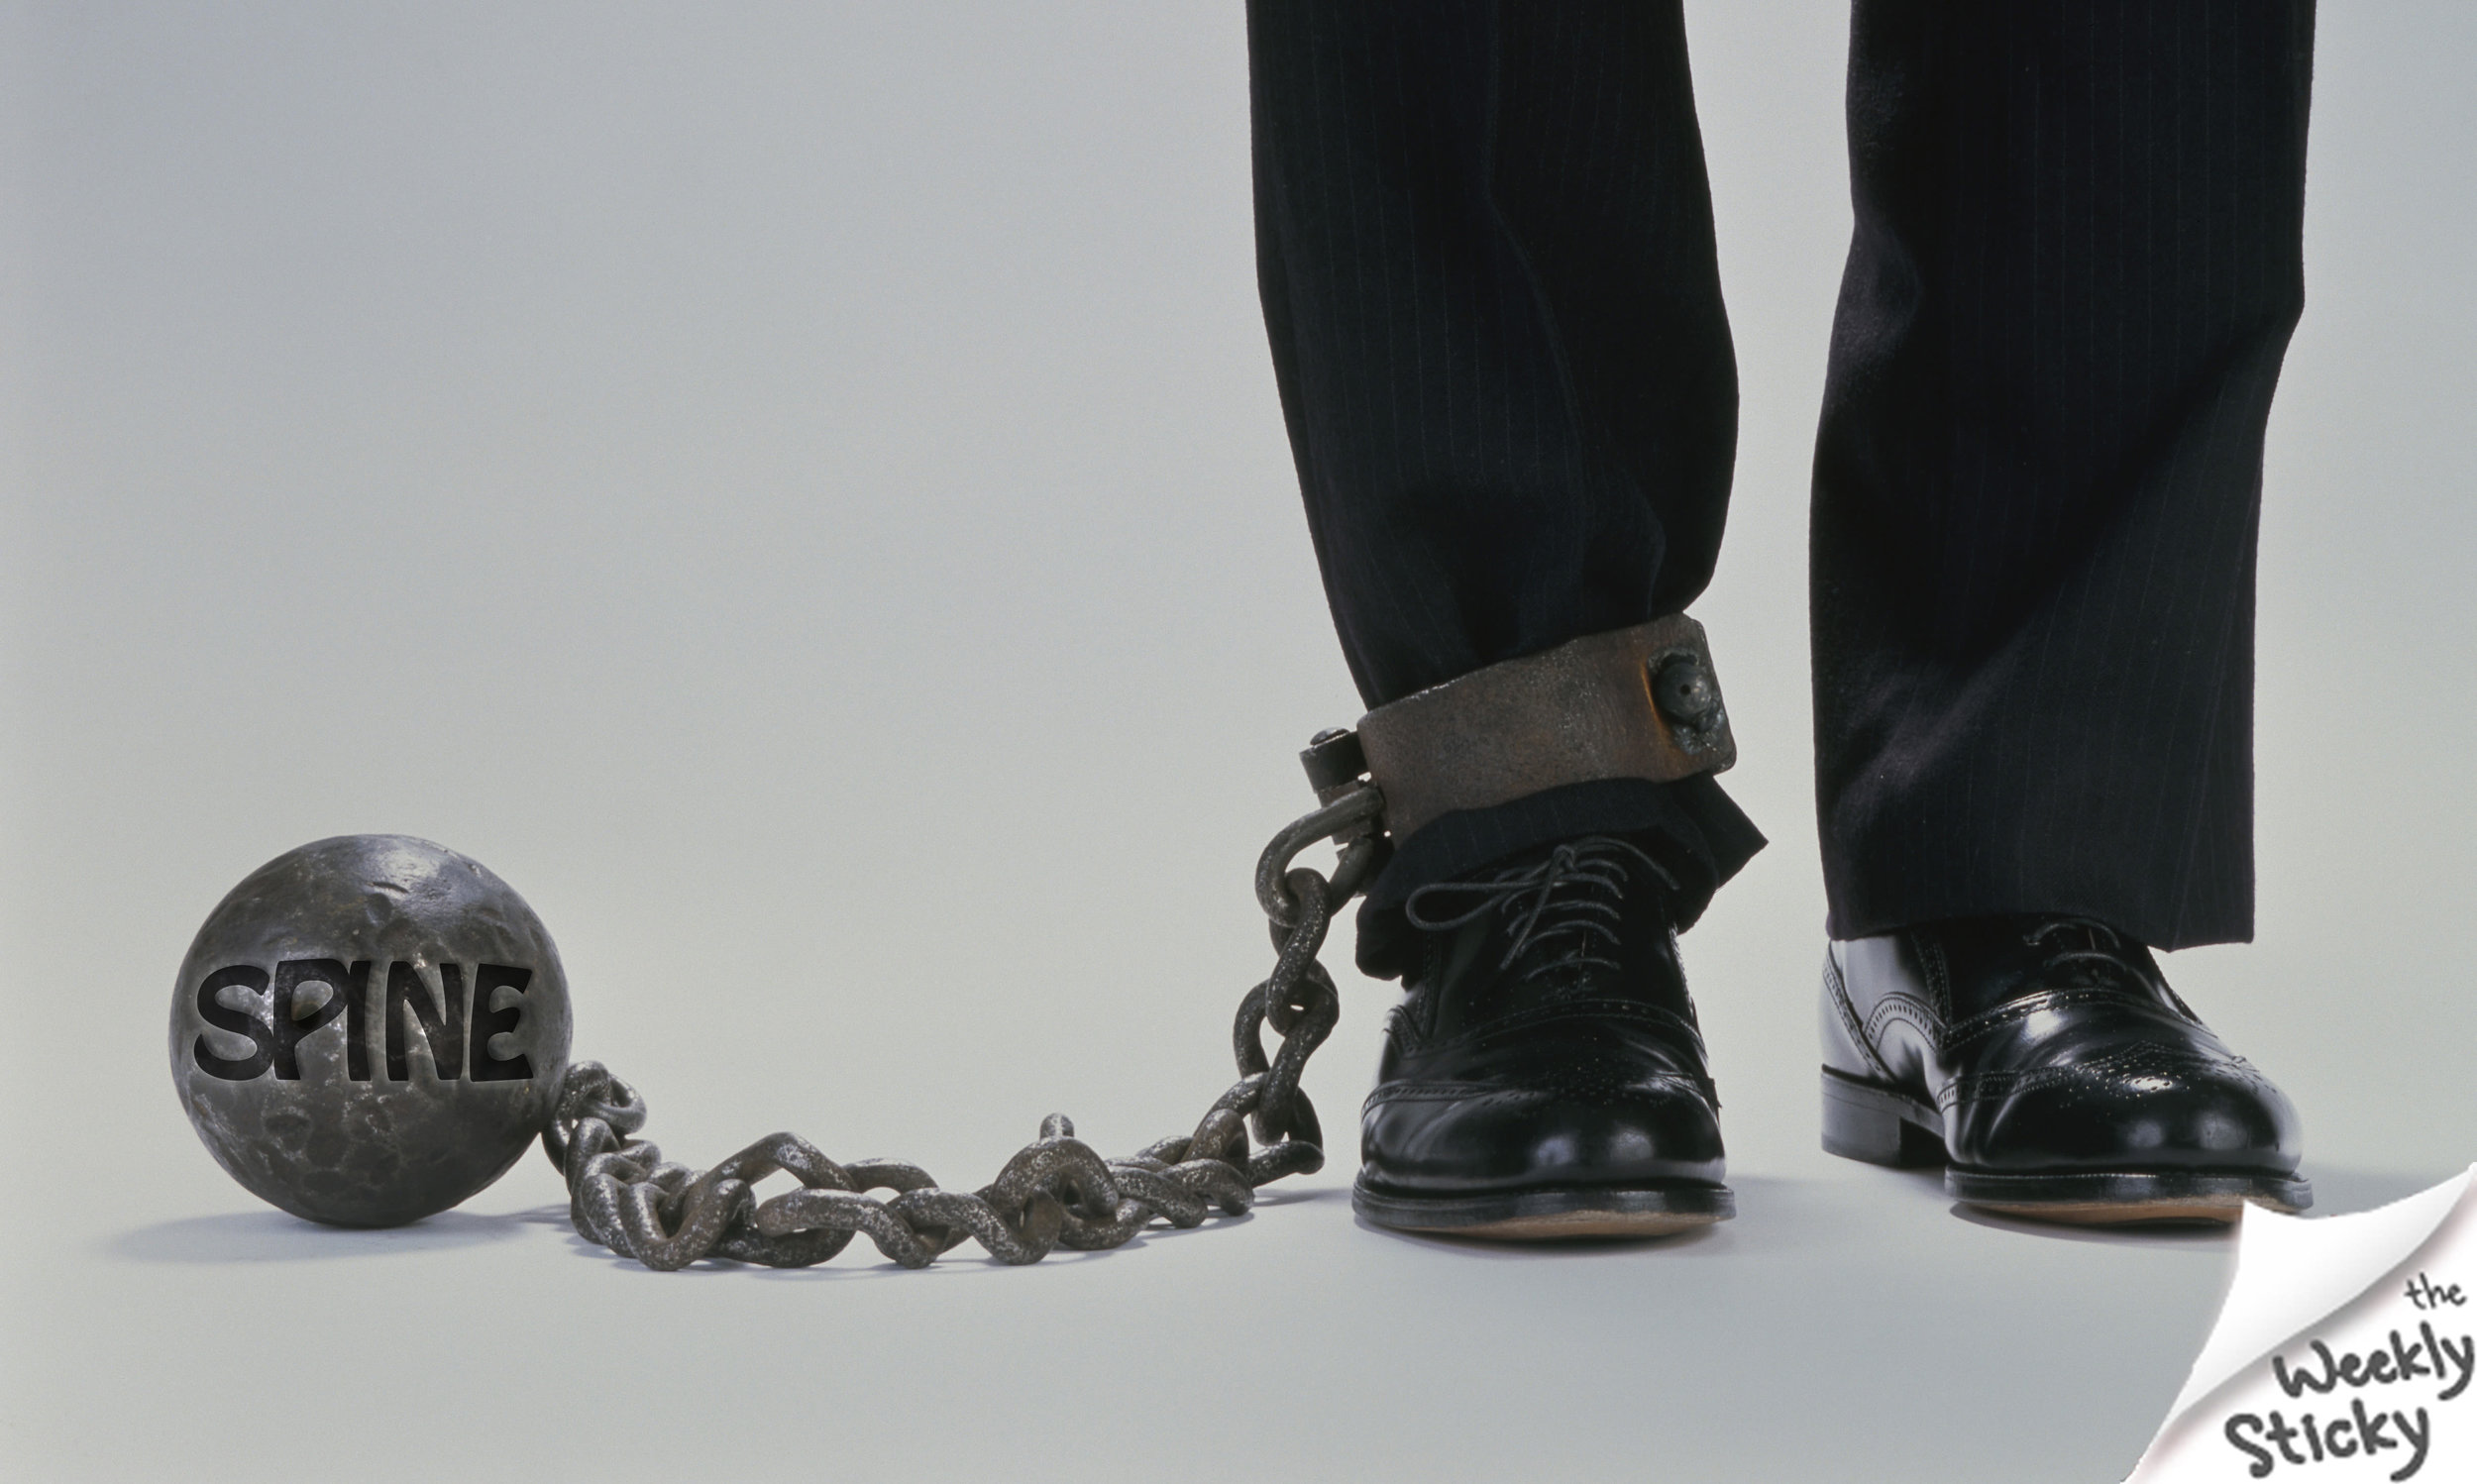 subluxation ball and chain image.jpg